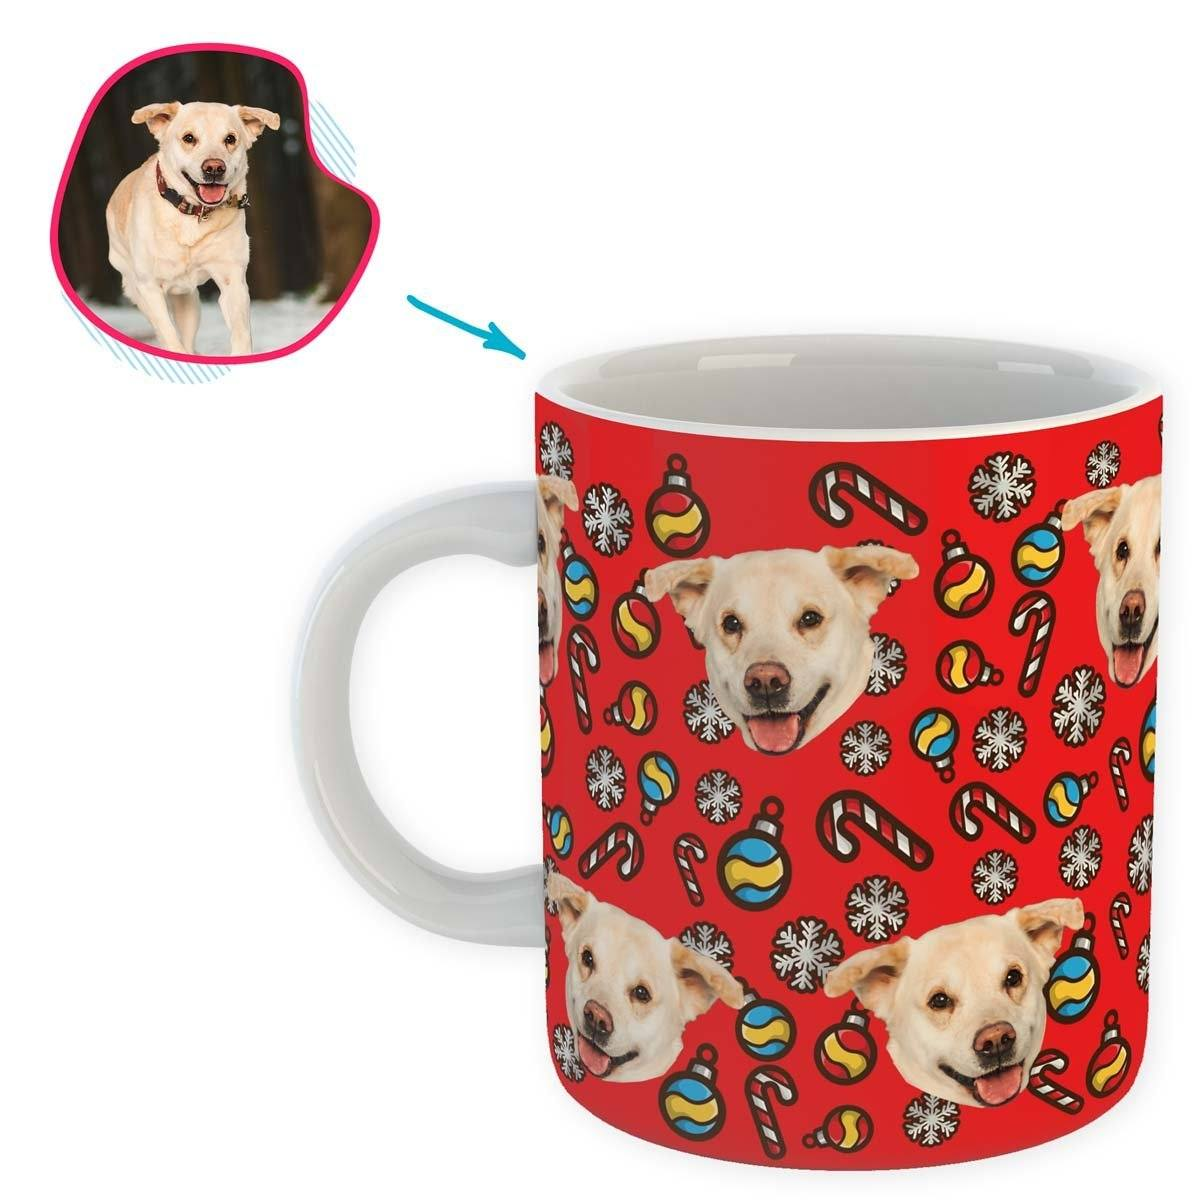 red Christmas Tree Toy mug personalized with photo of face printed on it